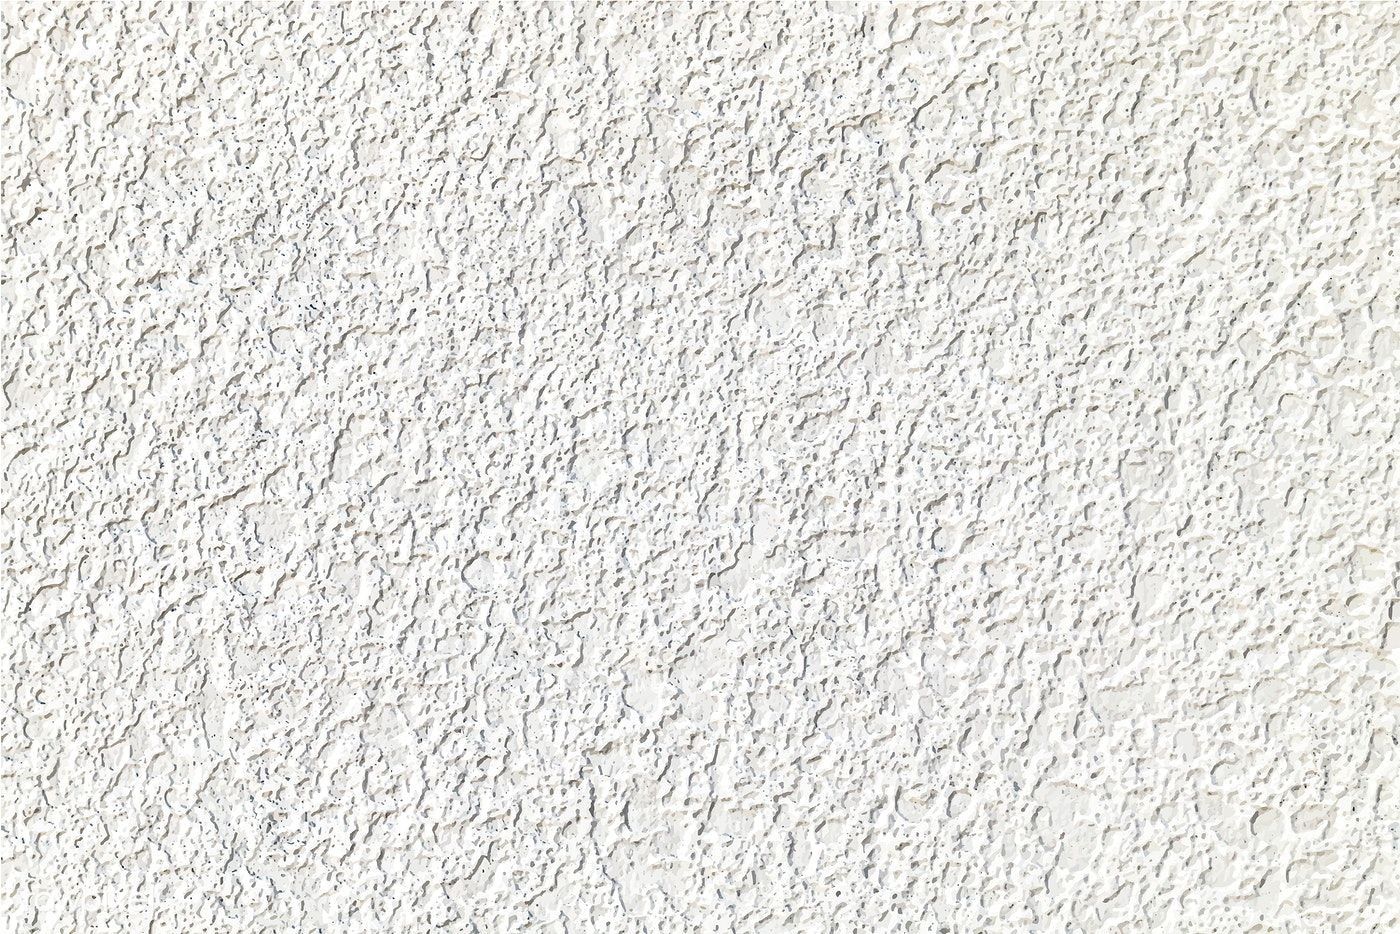 Rough White Cement Plastered Wall Texture Free Image By Rawpixel Com Plaster Wall Texture Stone Tile Texture Plaster Walls